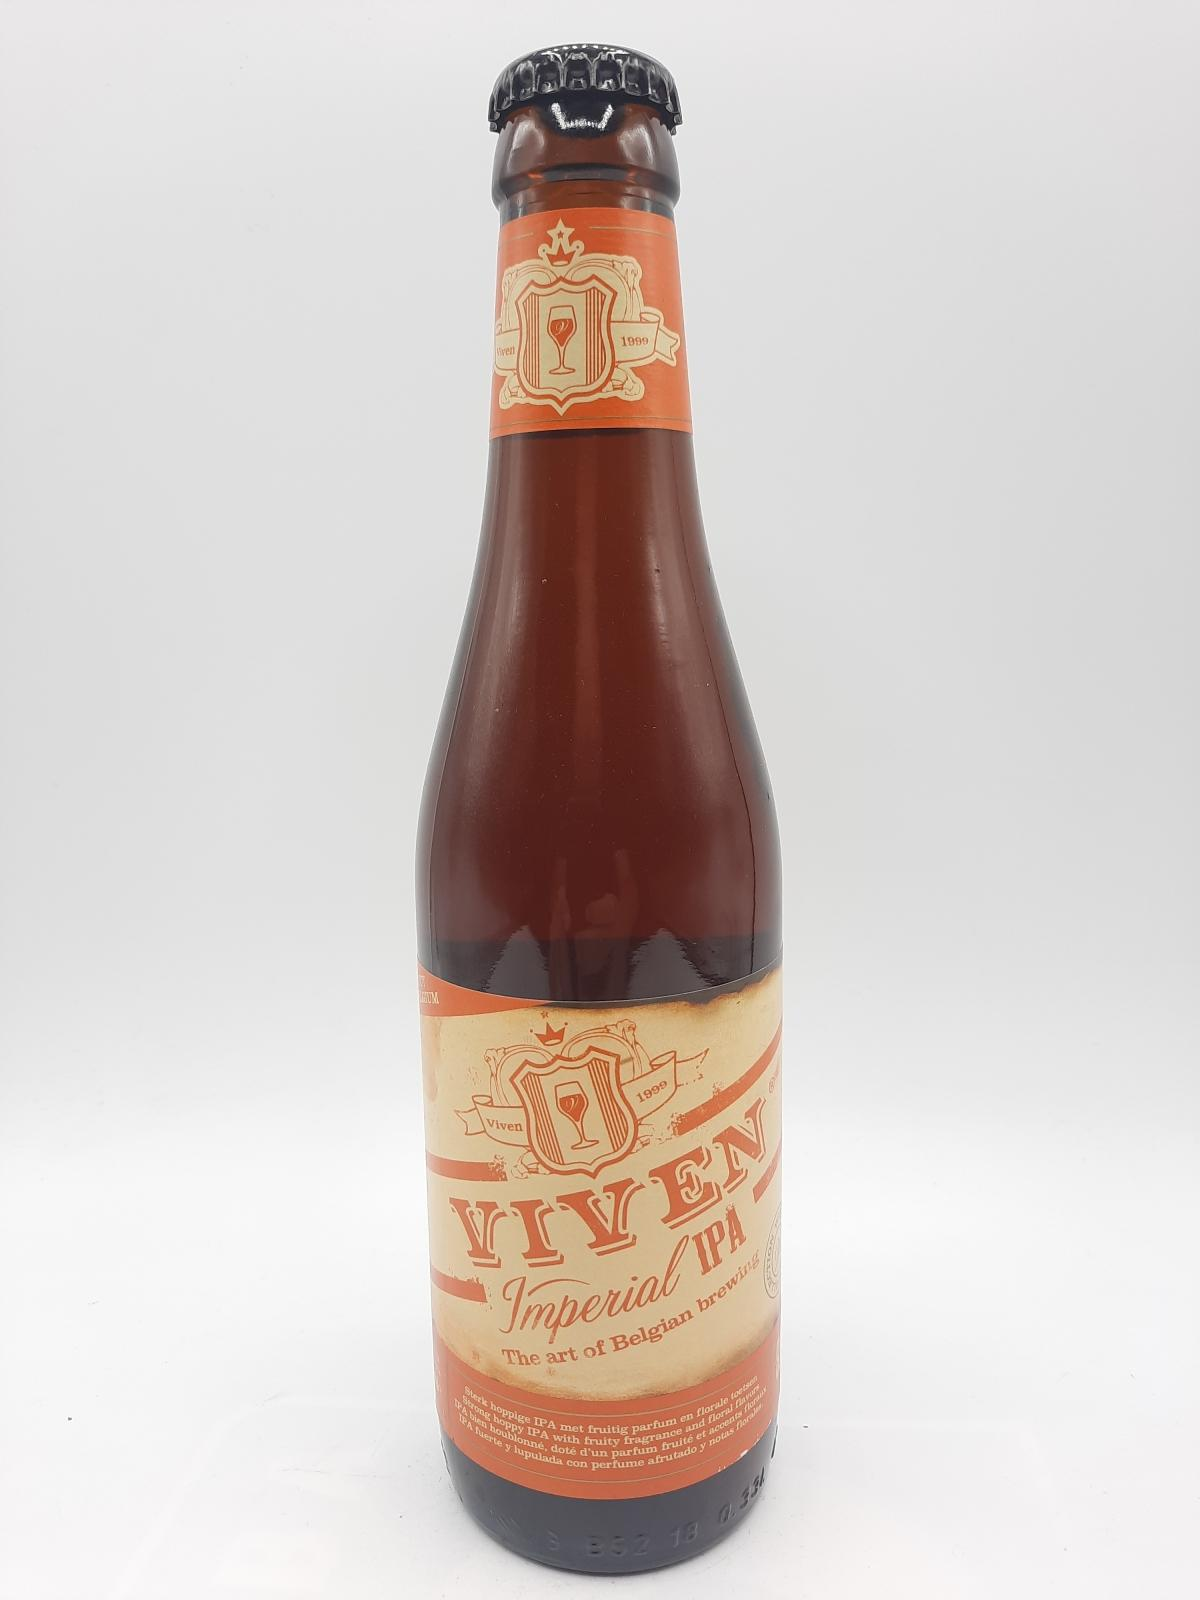 Image Viven Imperial Ipa